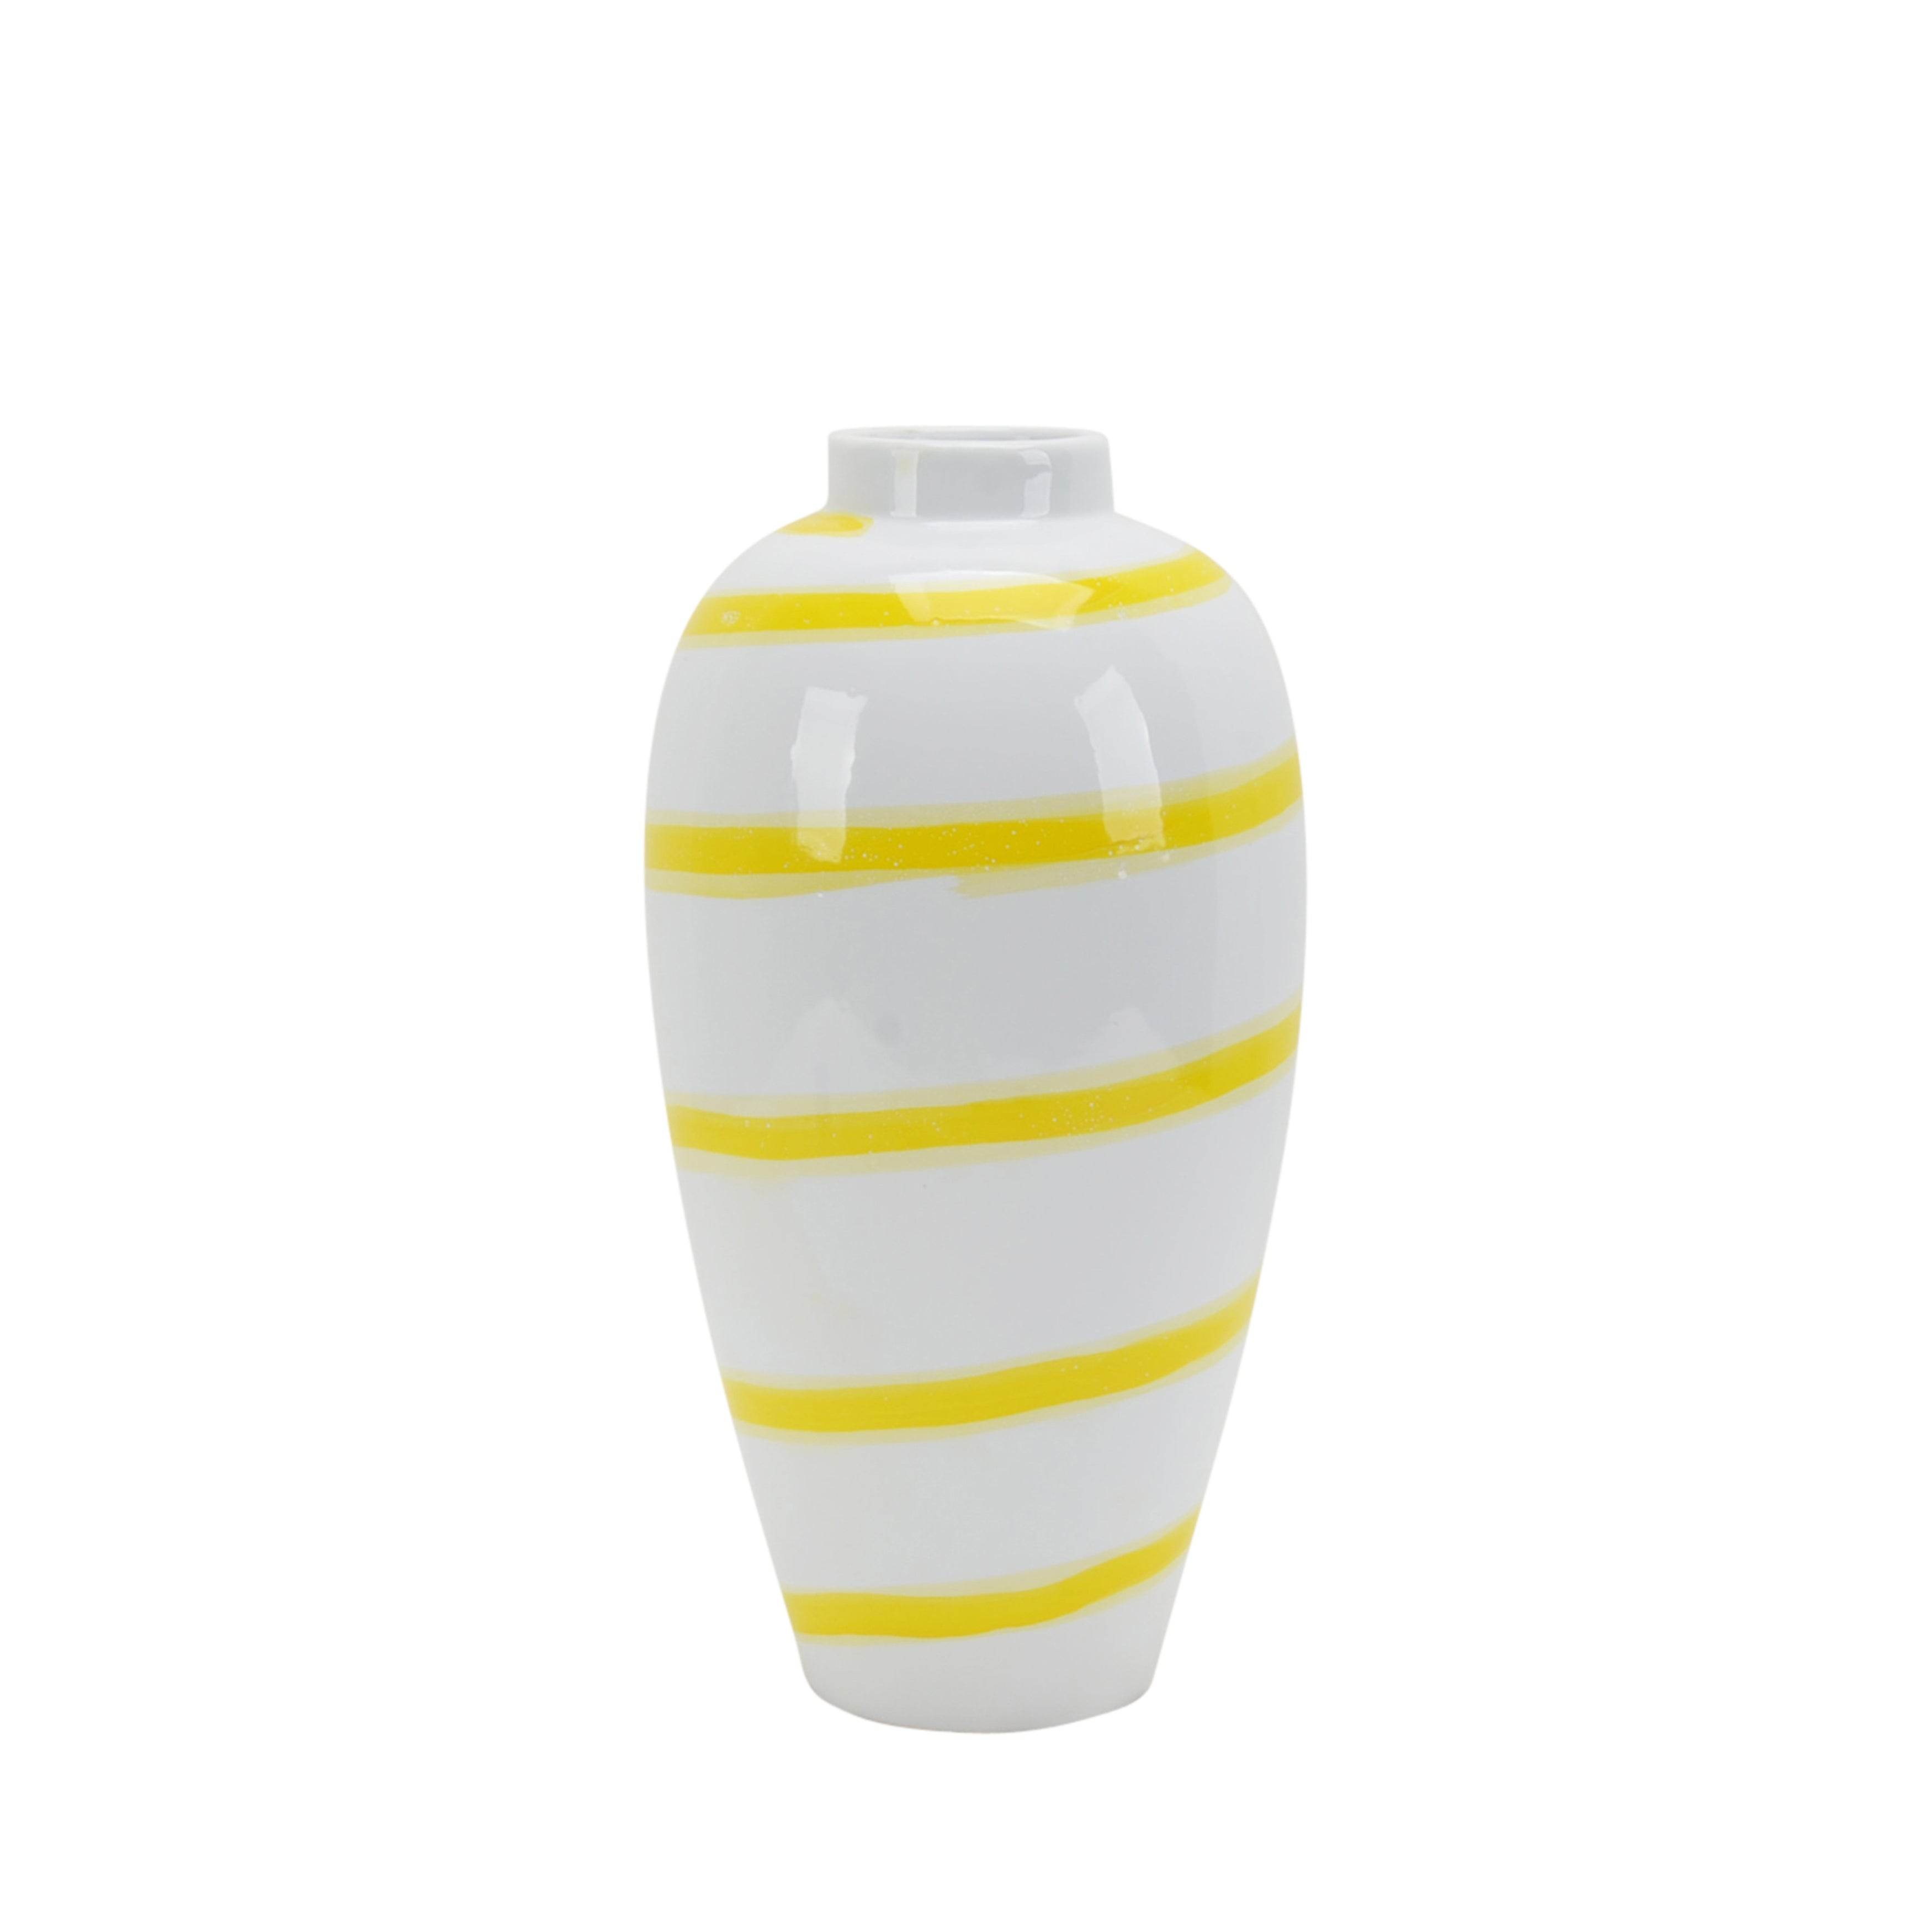 Ceramic Vase in Convex Shape with Striped Pattern, White and Yellow